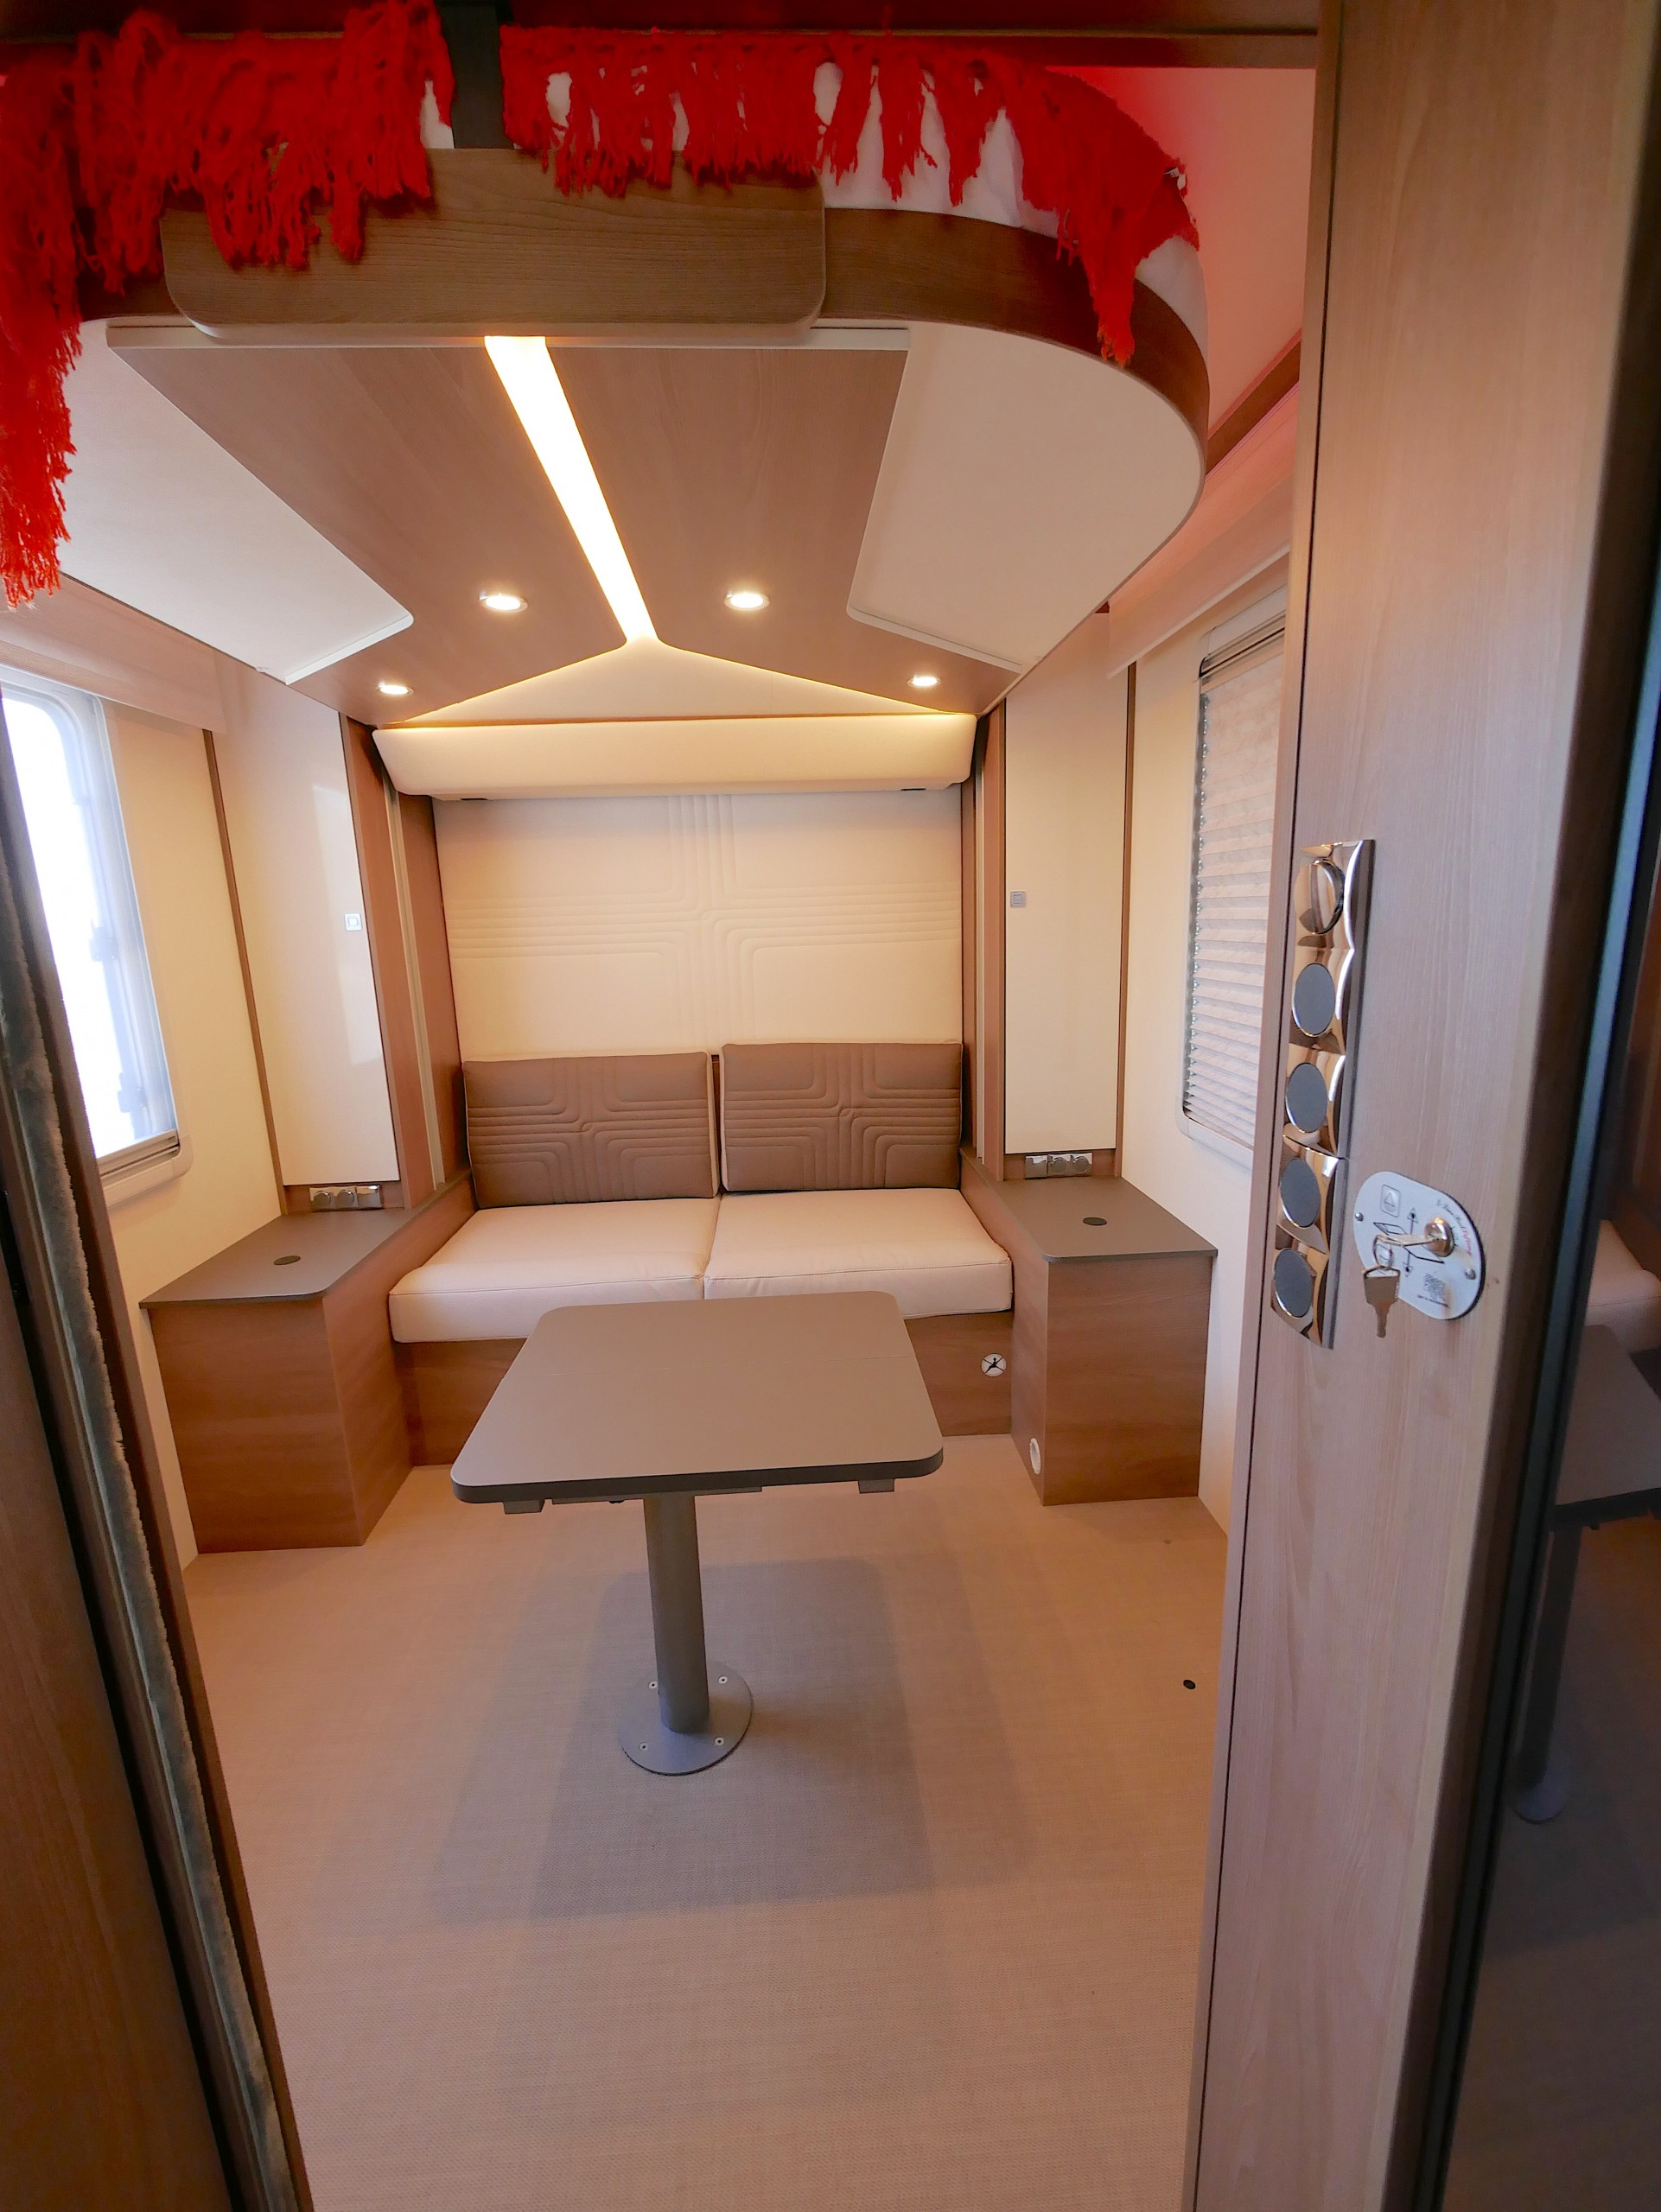 The rear lounge is different, a two-seater couch in the middle rear, adjustable and foldable table in front. Wardrobes and bench tops both sides